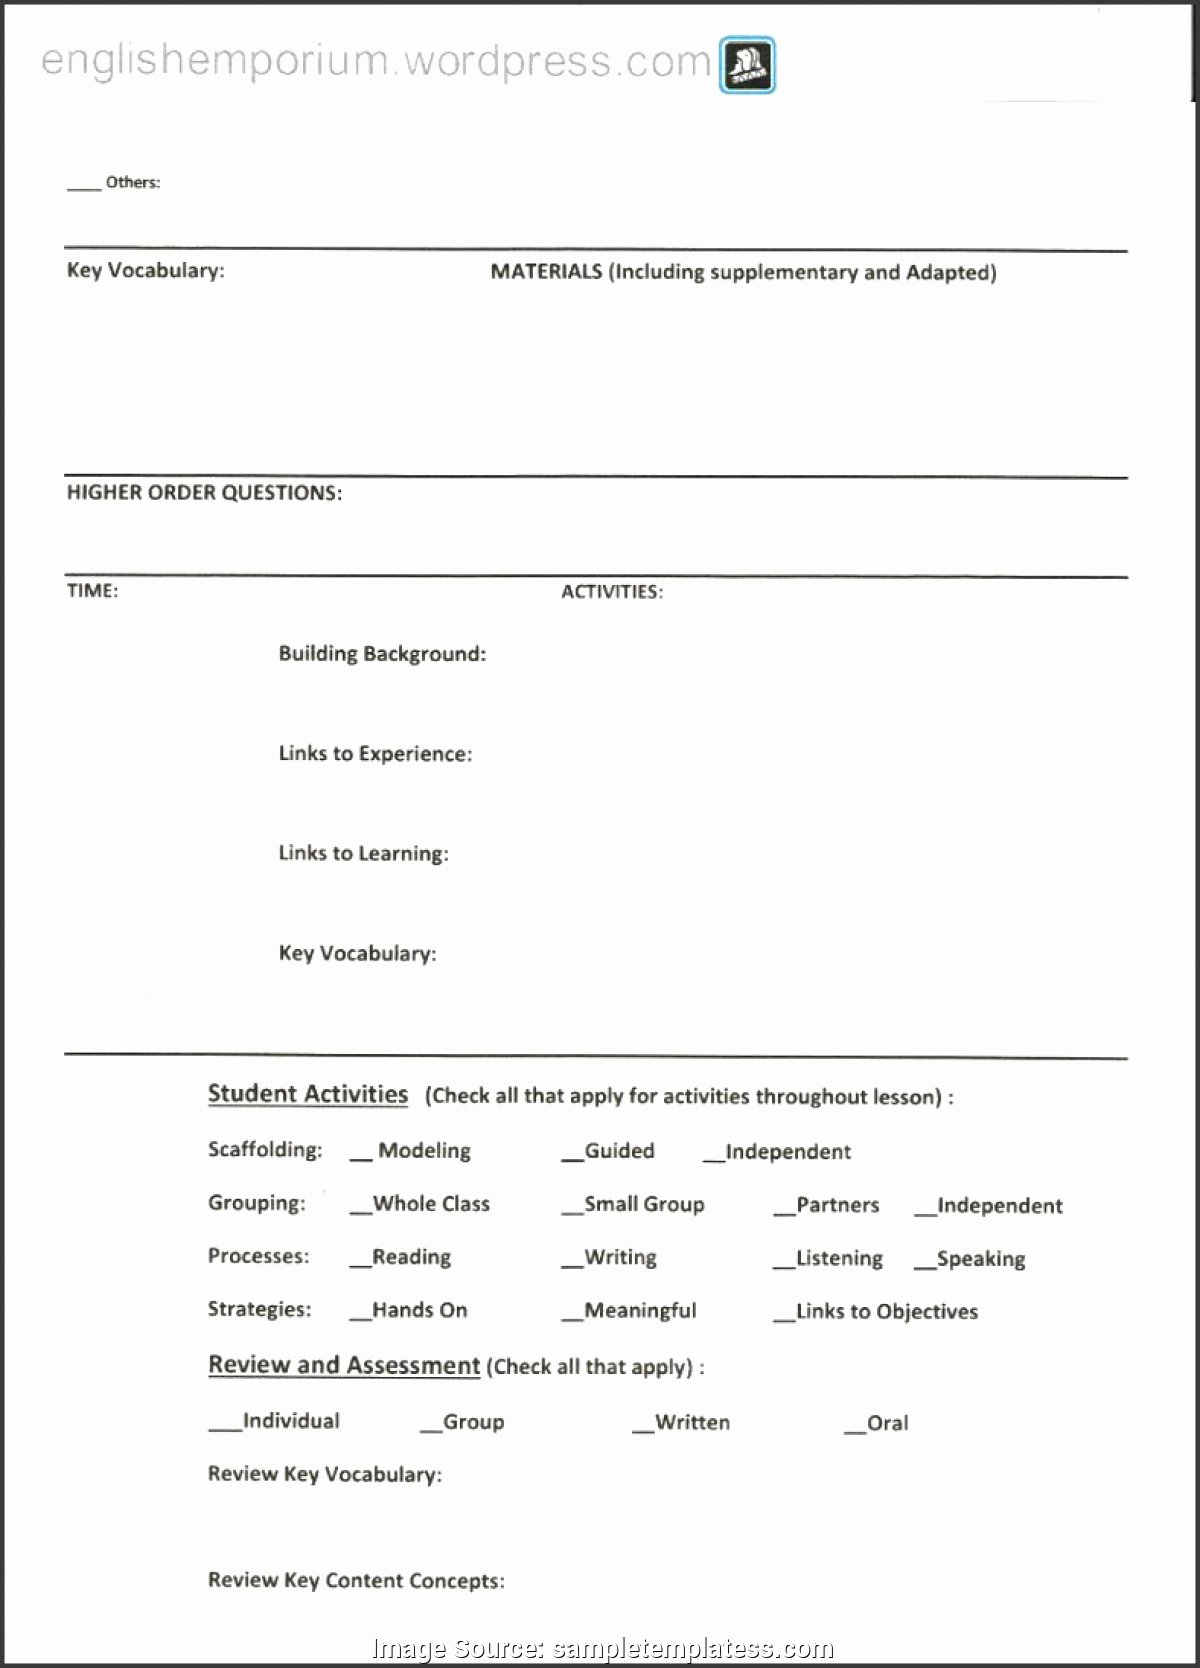 Siop Lesson Plan Template 1 Luxury Trending Siop Lesson Plan Template 1 Word Document 9